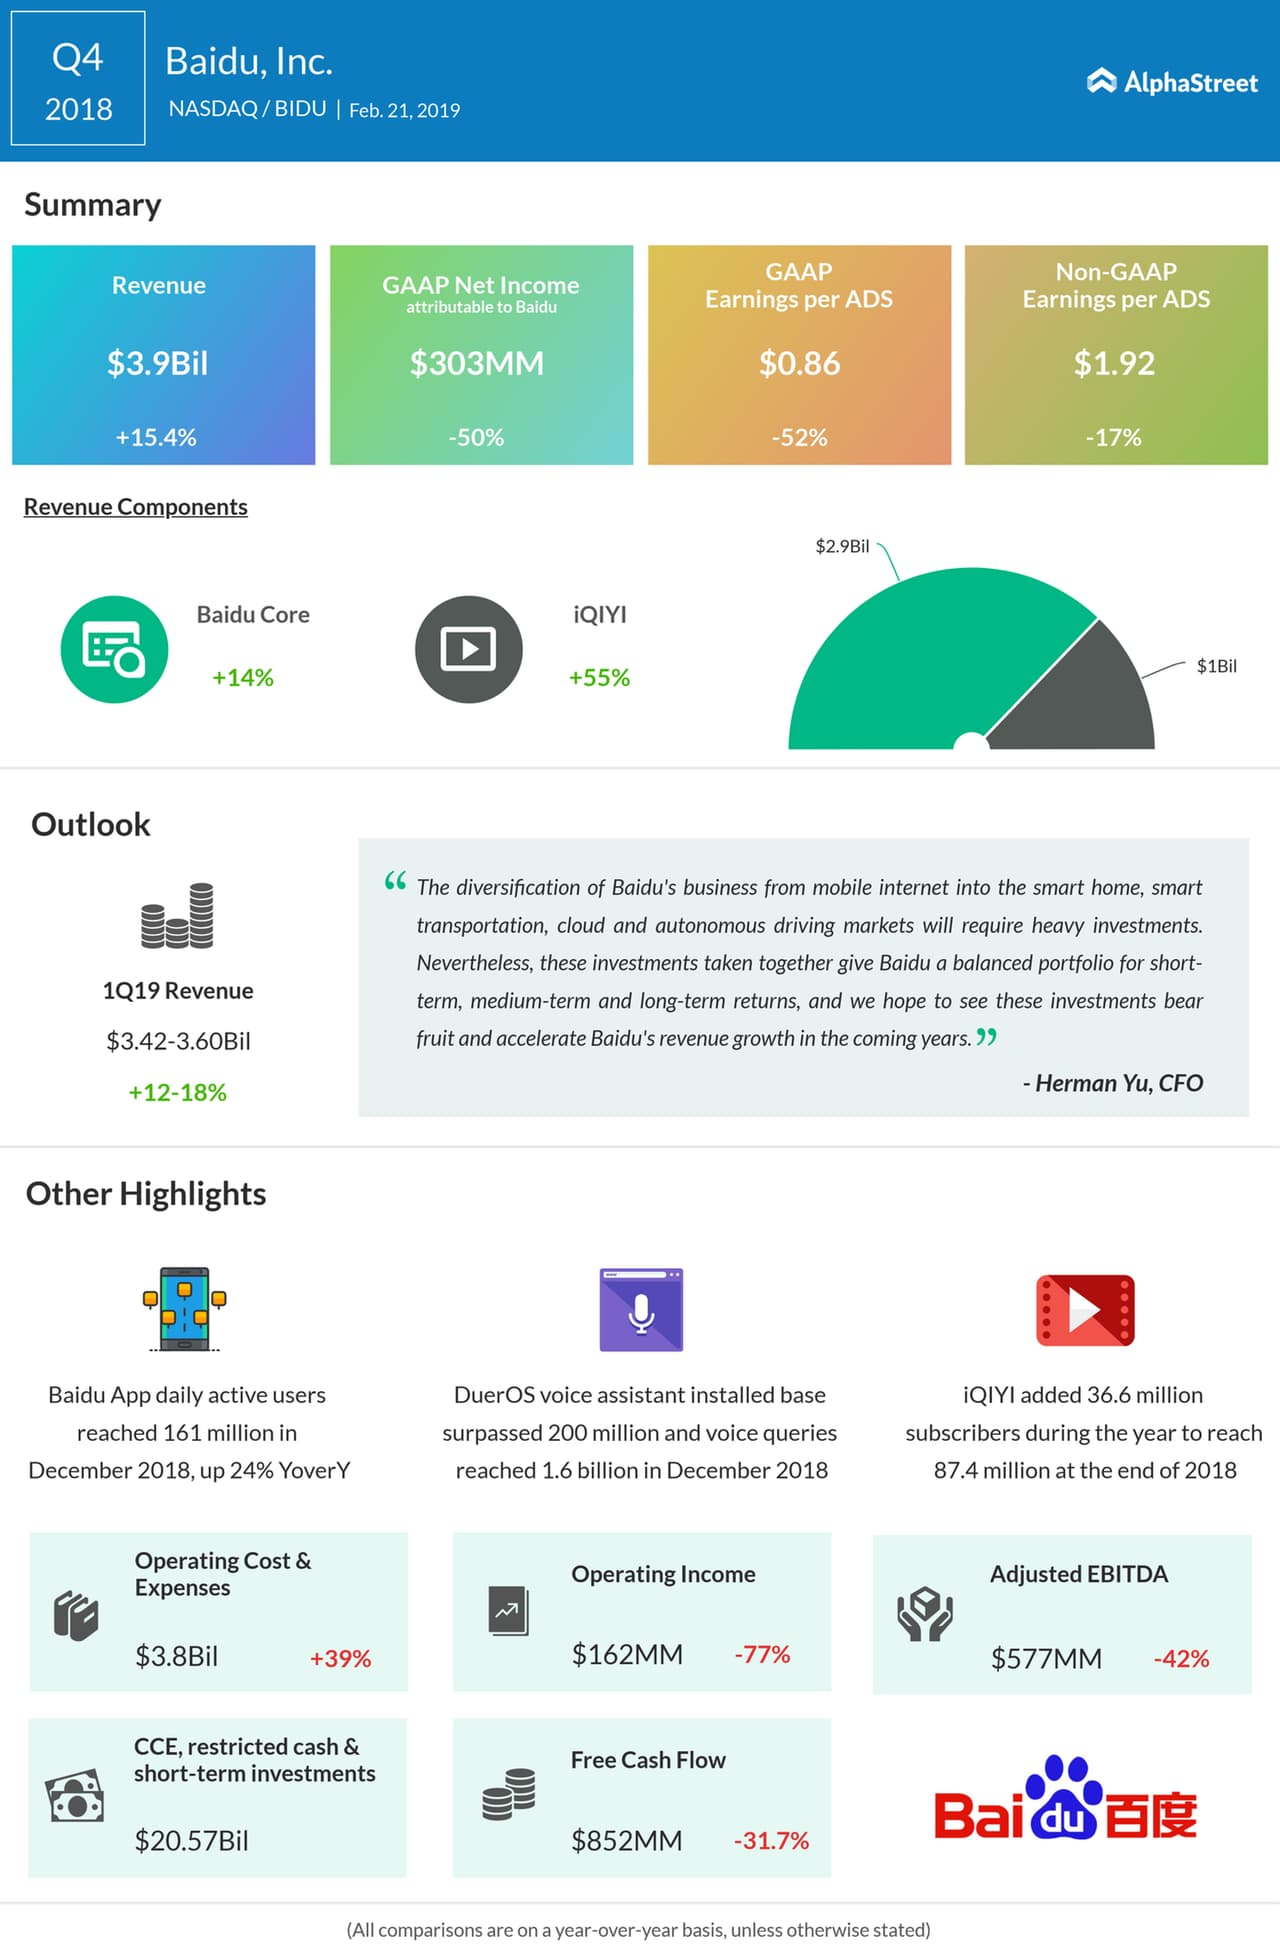 An infographic on Baidu's fourth quarter 2018 earnings results